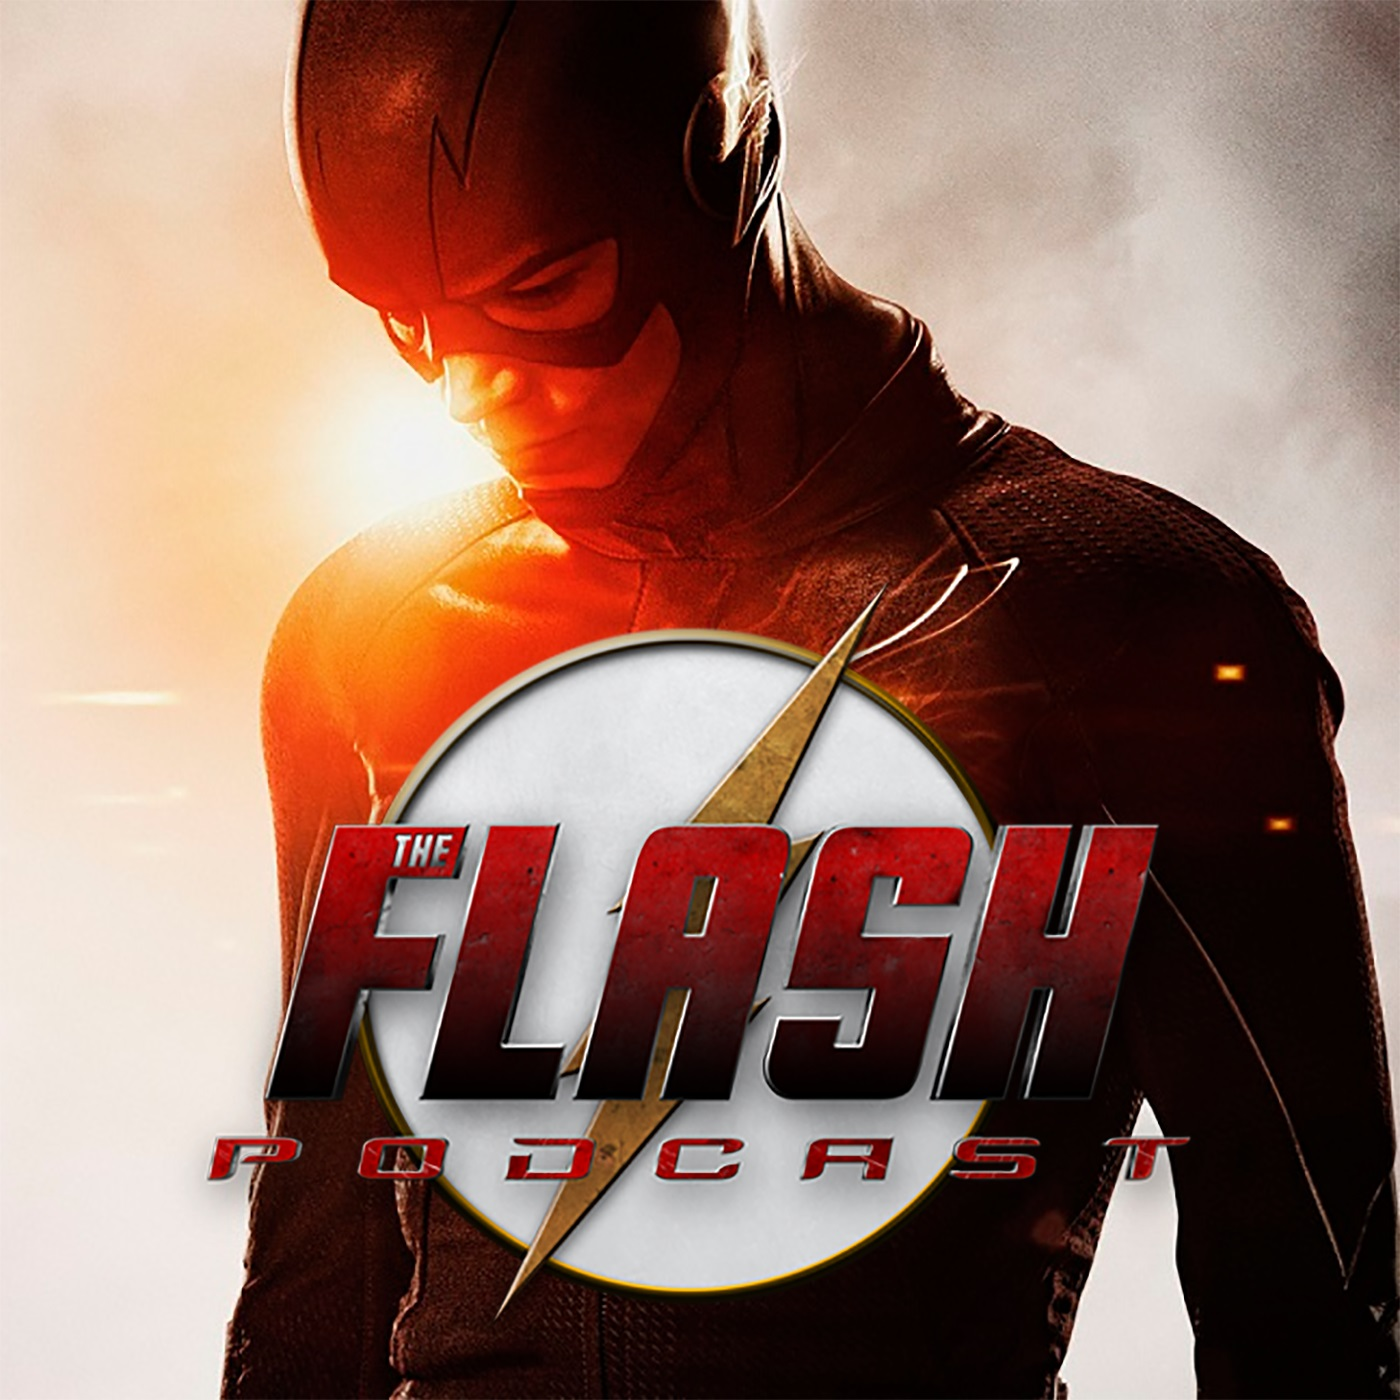 The Flash Podcast Season 2.5 - Episode 10: Dr. Alchemy & Savitar Character Spotlights